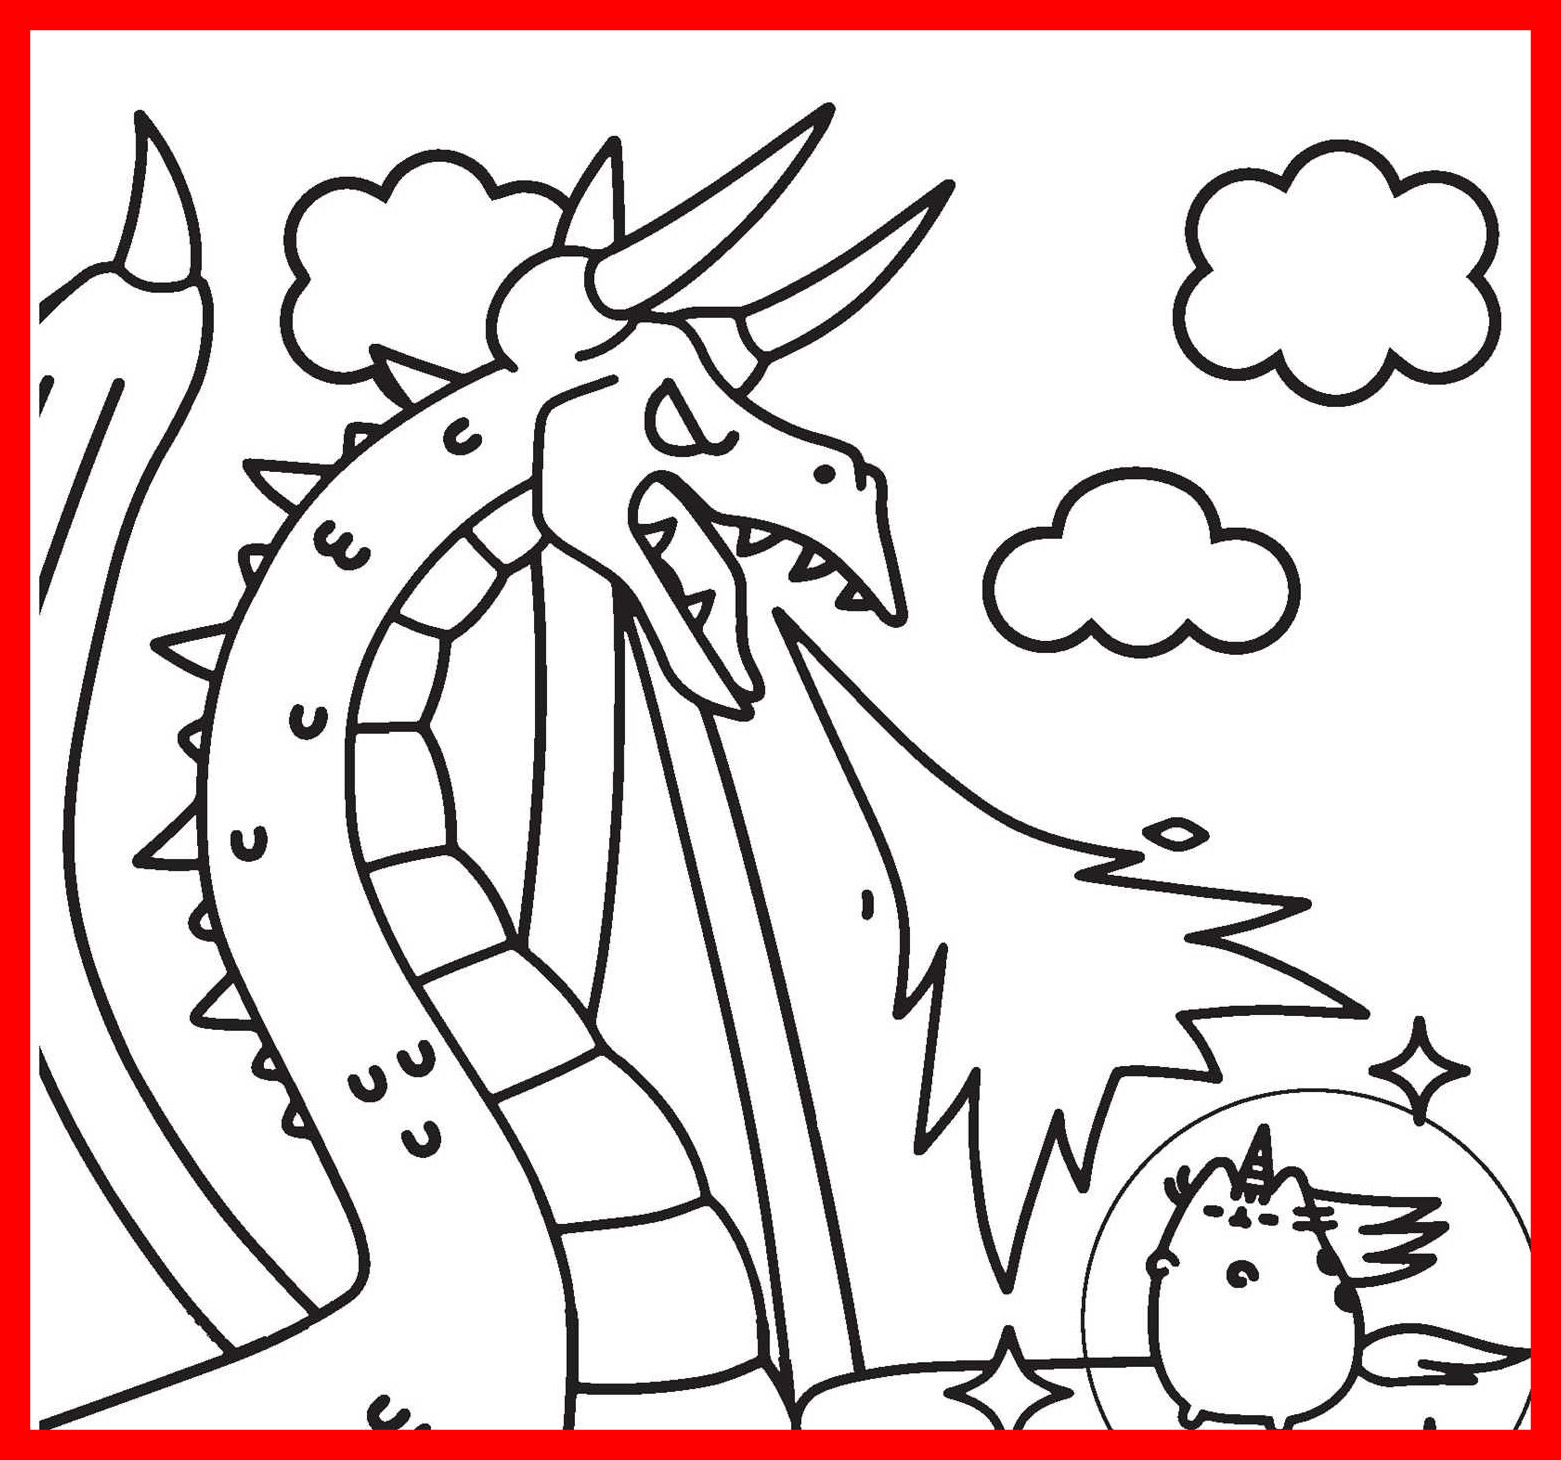 Action Figure Coloring Pages At Getcolorings